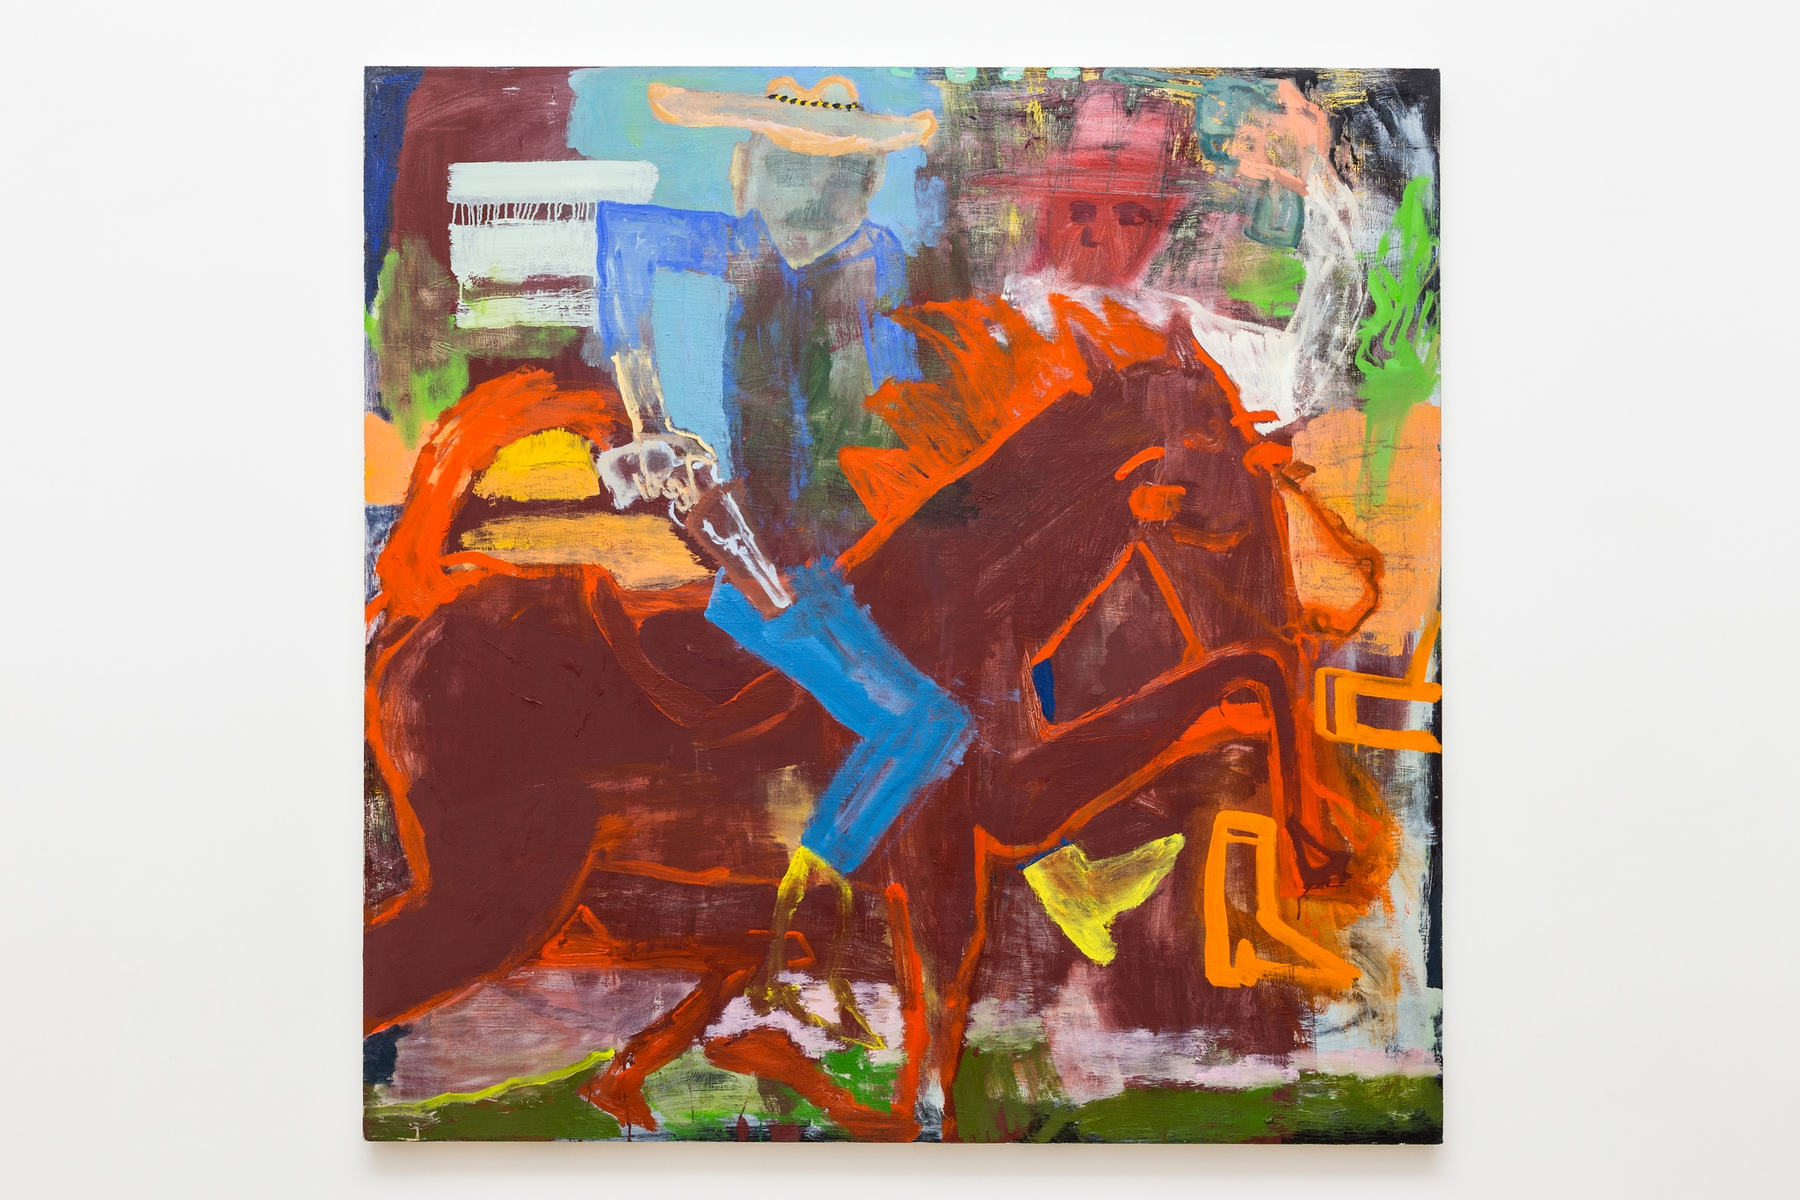 Katie Lipscomb Horse(s) and Rider(s) 122x122 cm